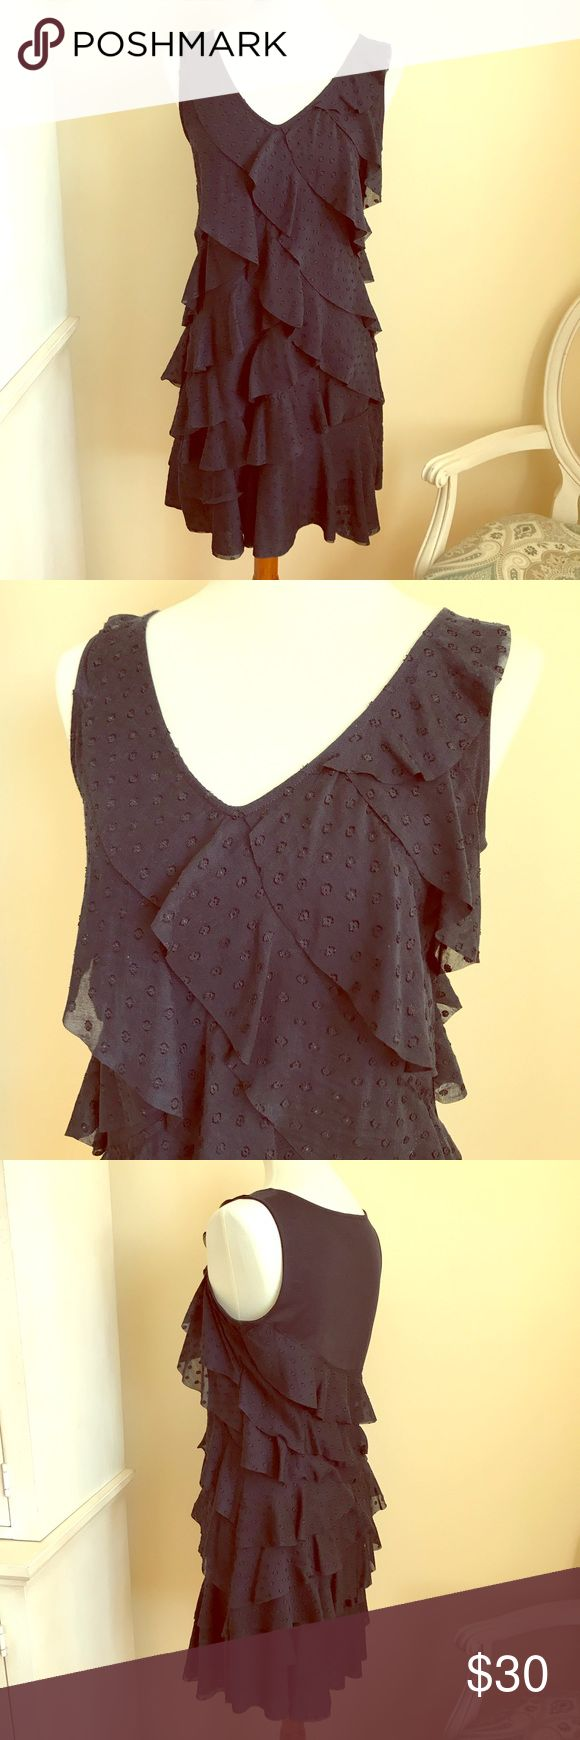 Anne Taylor LOFT Navy Ruffled Dress Anne Taylor LOFT Tiered Ruffle sleeveless navy blue dress. EUC. Only used once. Perfect dress for the Spring Season! LOFT Dresses